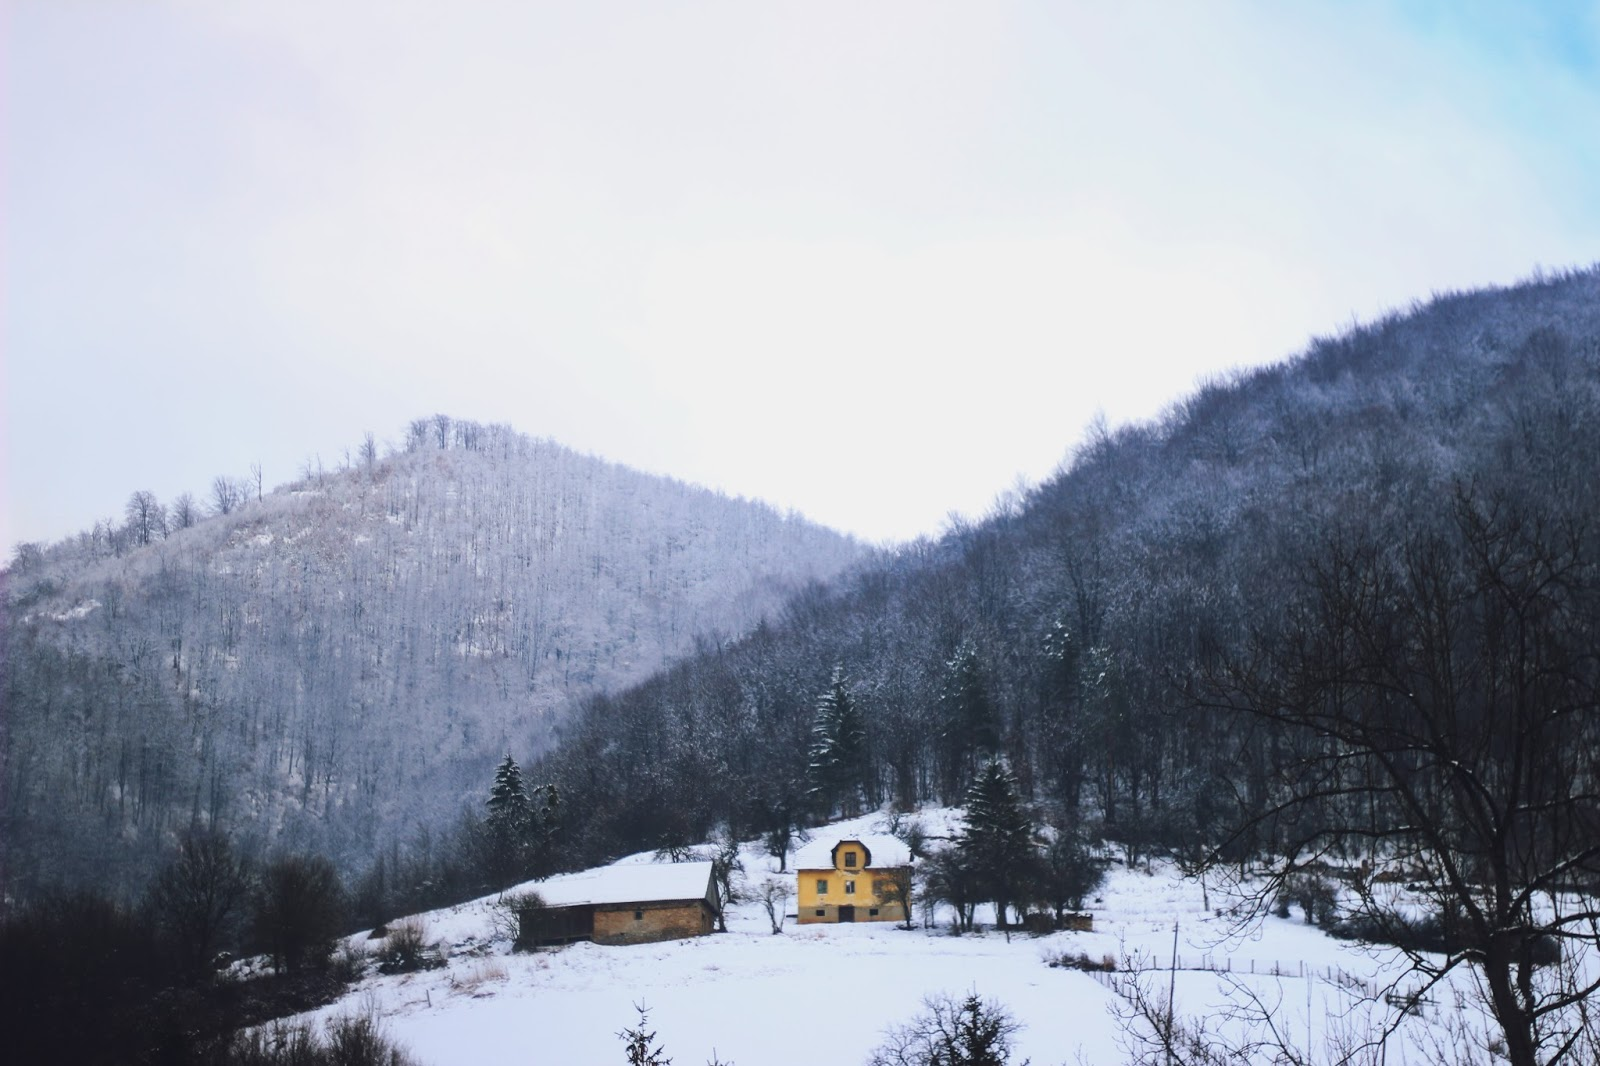 filipa canic blog, youarethepoet, you are the poet blog, winter, forest, house on the hill,